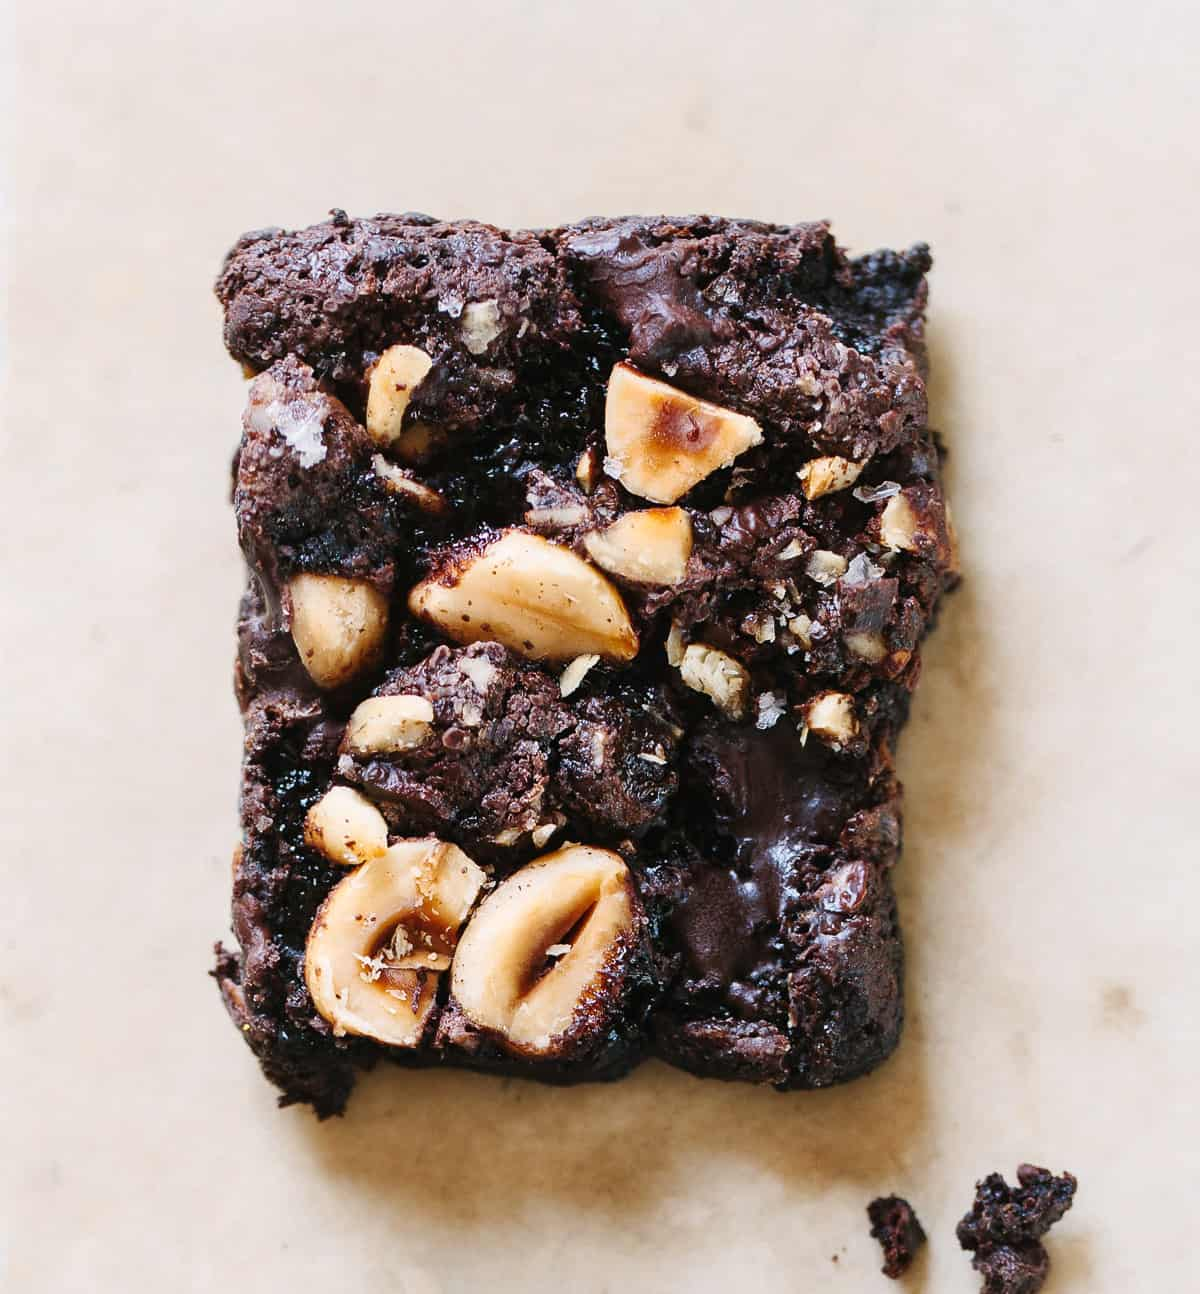 Gooey Chocolate Hazelnut Brownies (Gluten-free, Dairy-free)